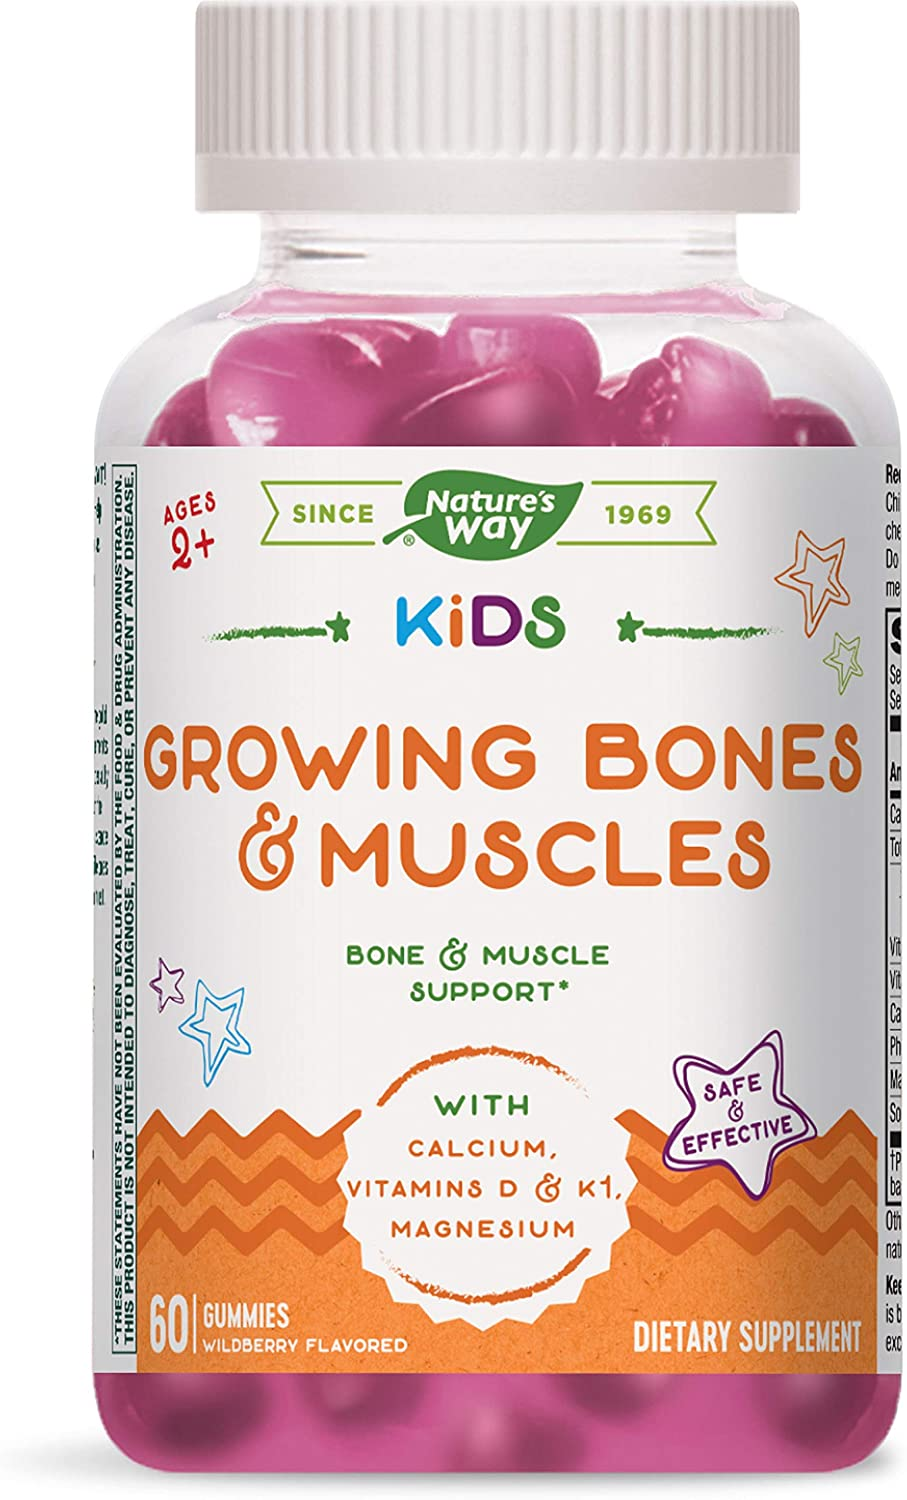 Nature's Way Kids Growing Bones & Muscles, Bone and Muscle Support*, Calcium and Vitamin D, Ages 4+, Wildberry Flavored, 60 Vegetarian Gummies